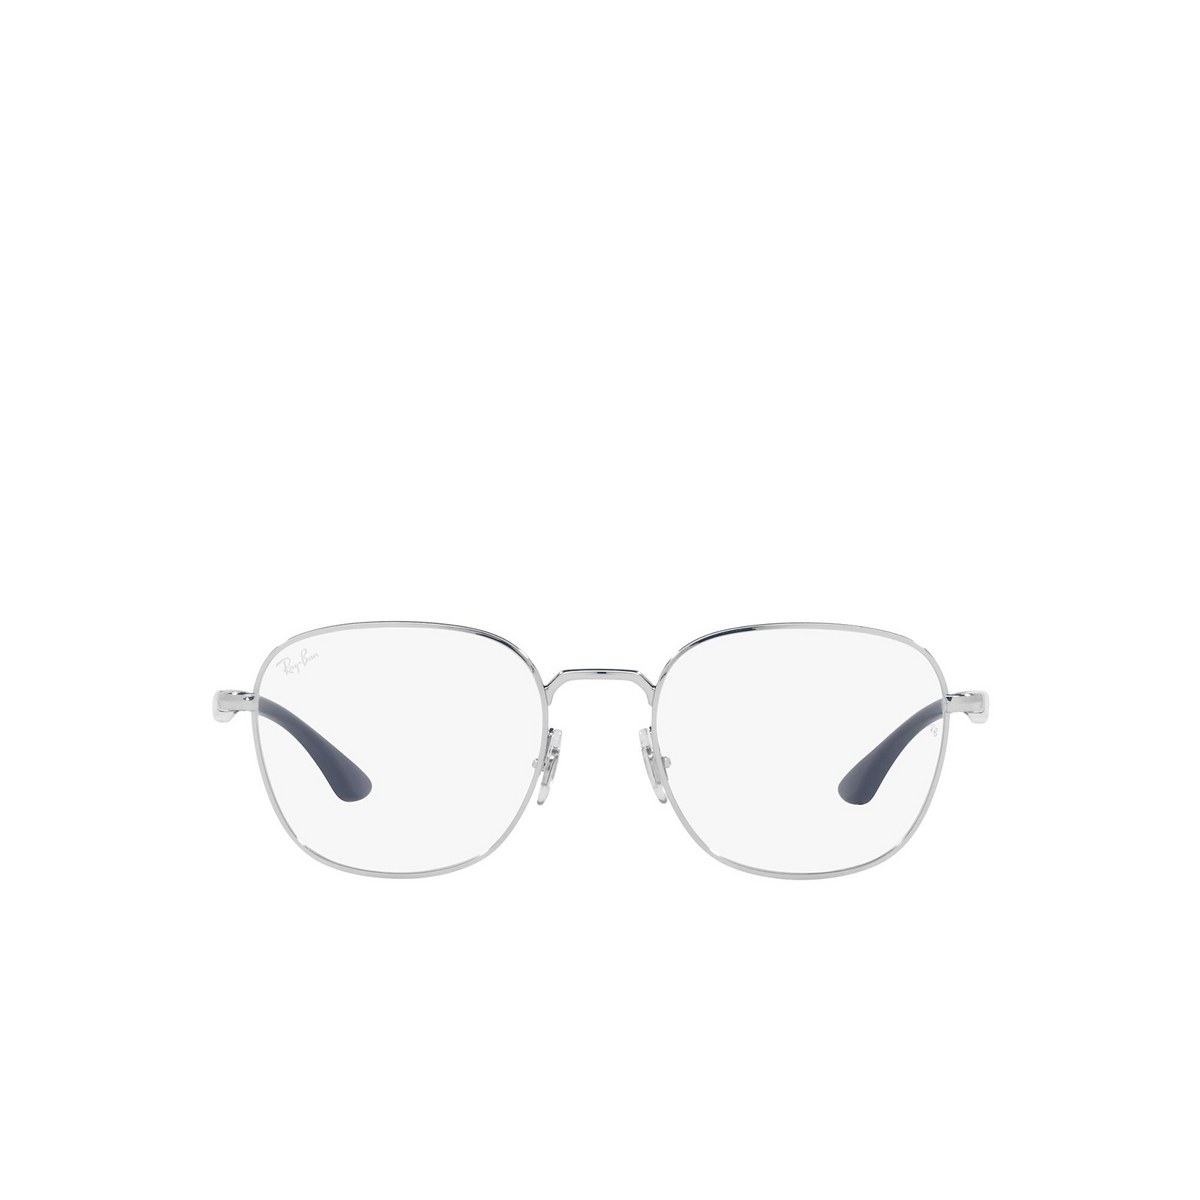 Ray-Ban® Square Eyeglasses: RX6477 color Silver 2501 - front view.